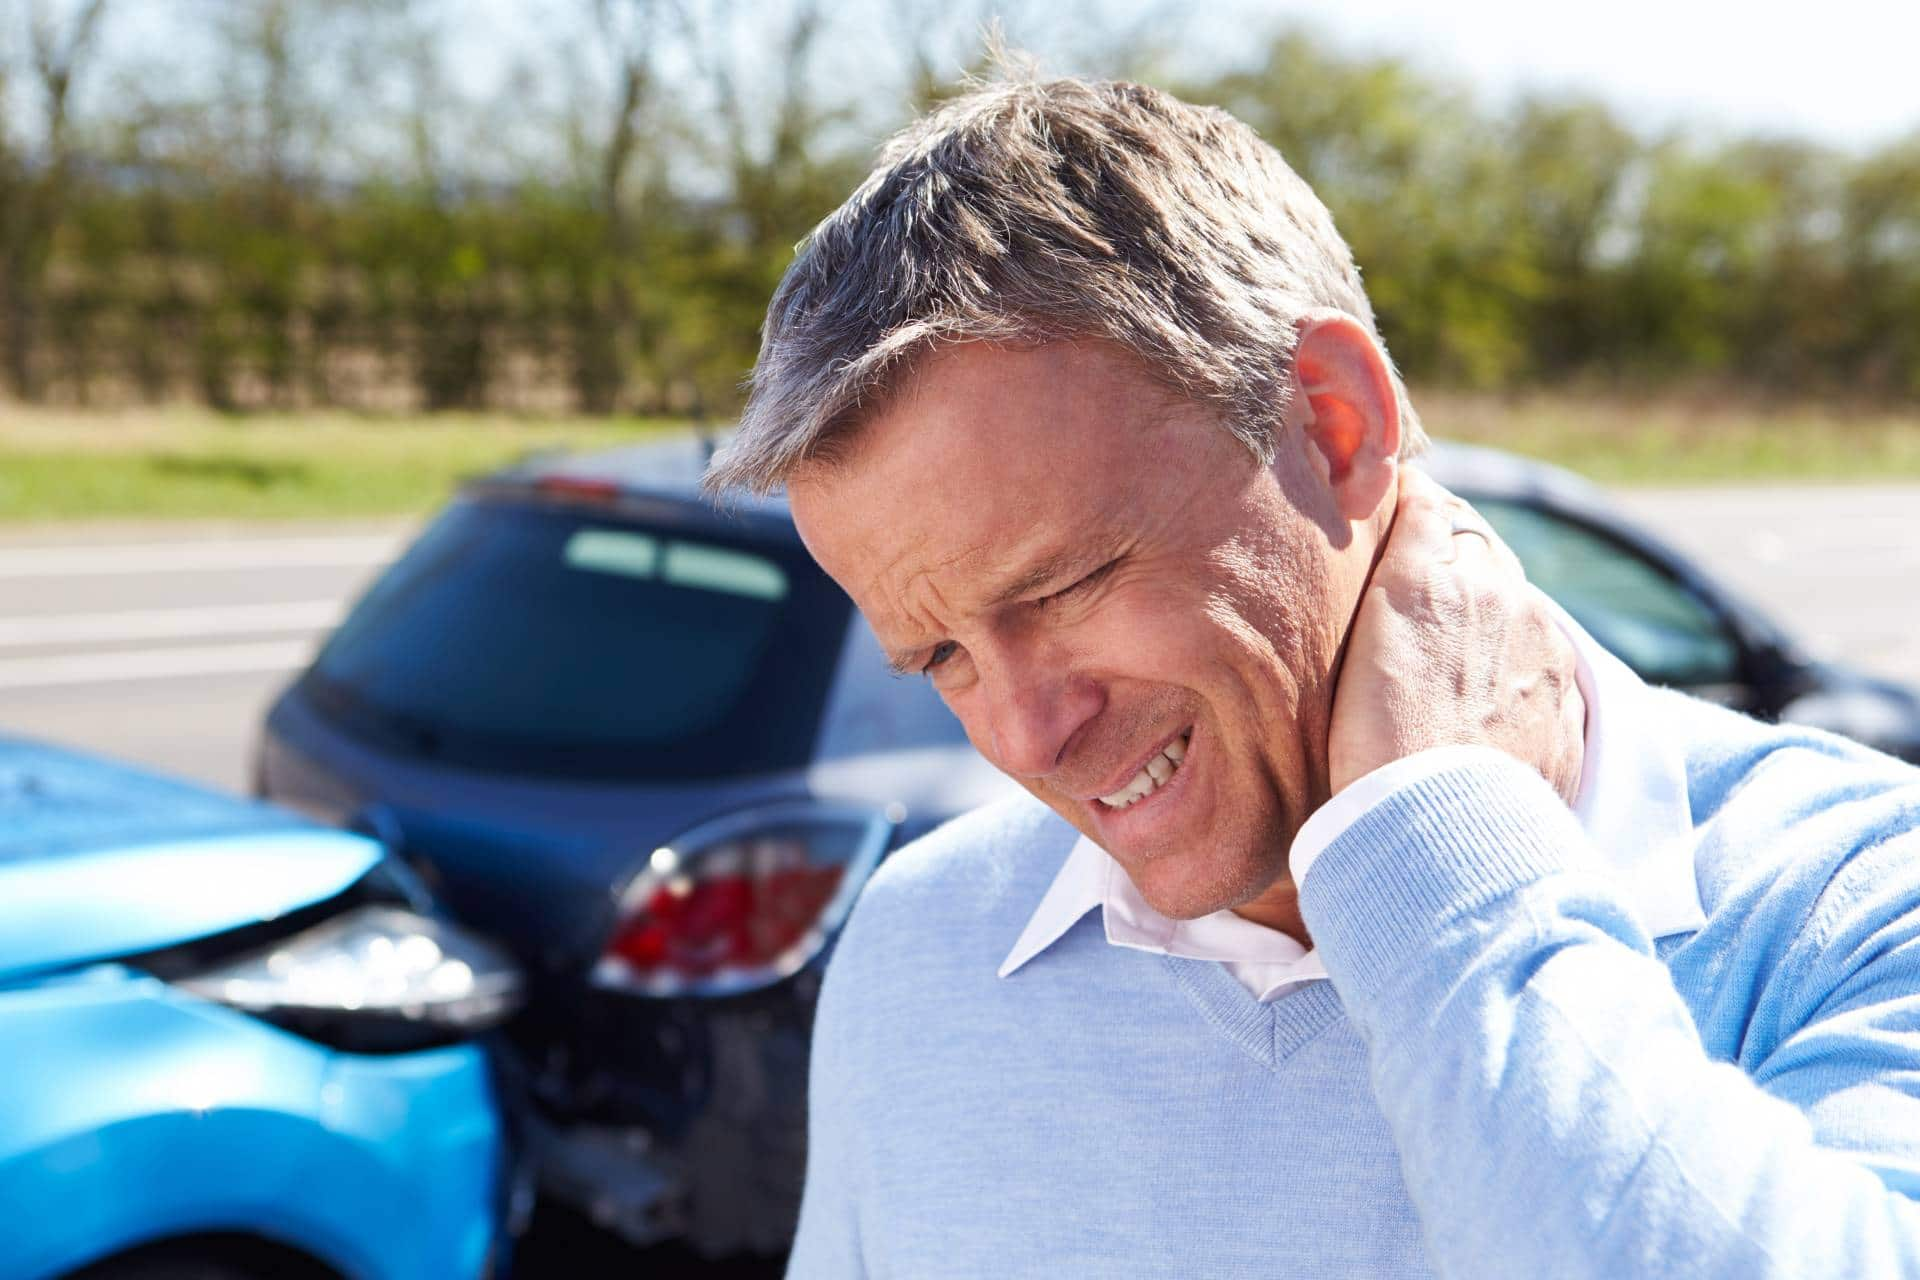 Injured in a car accident? Schedule a free consultation with our personal injury lawyers at the Angell Law Firm in Berkeley Park.